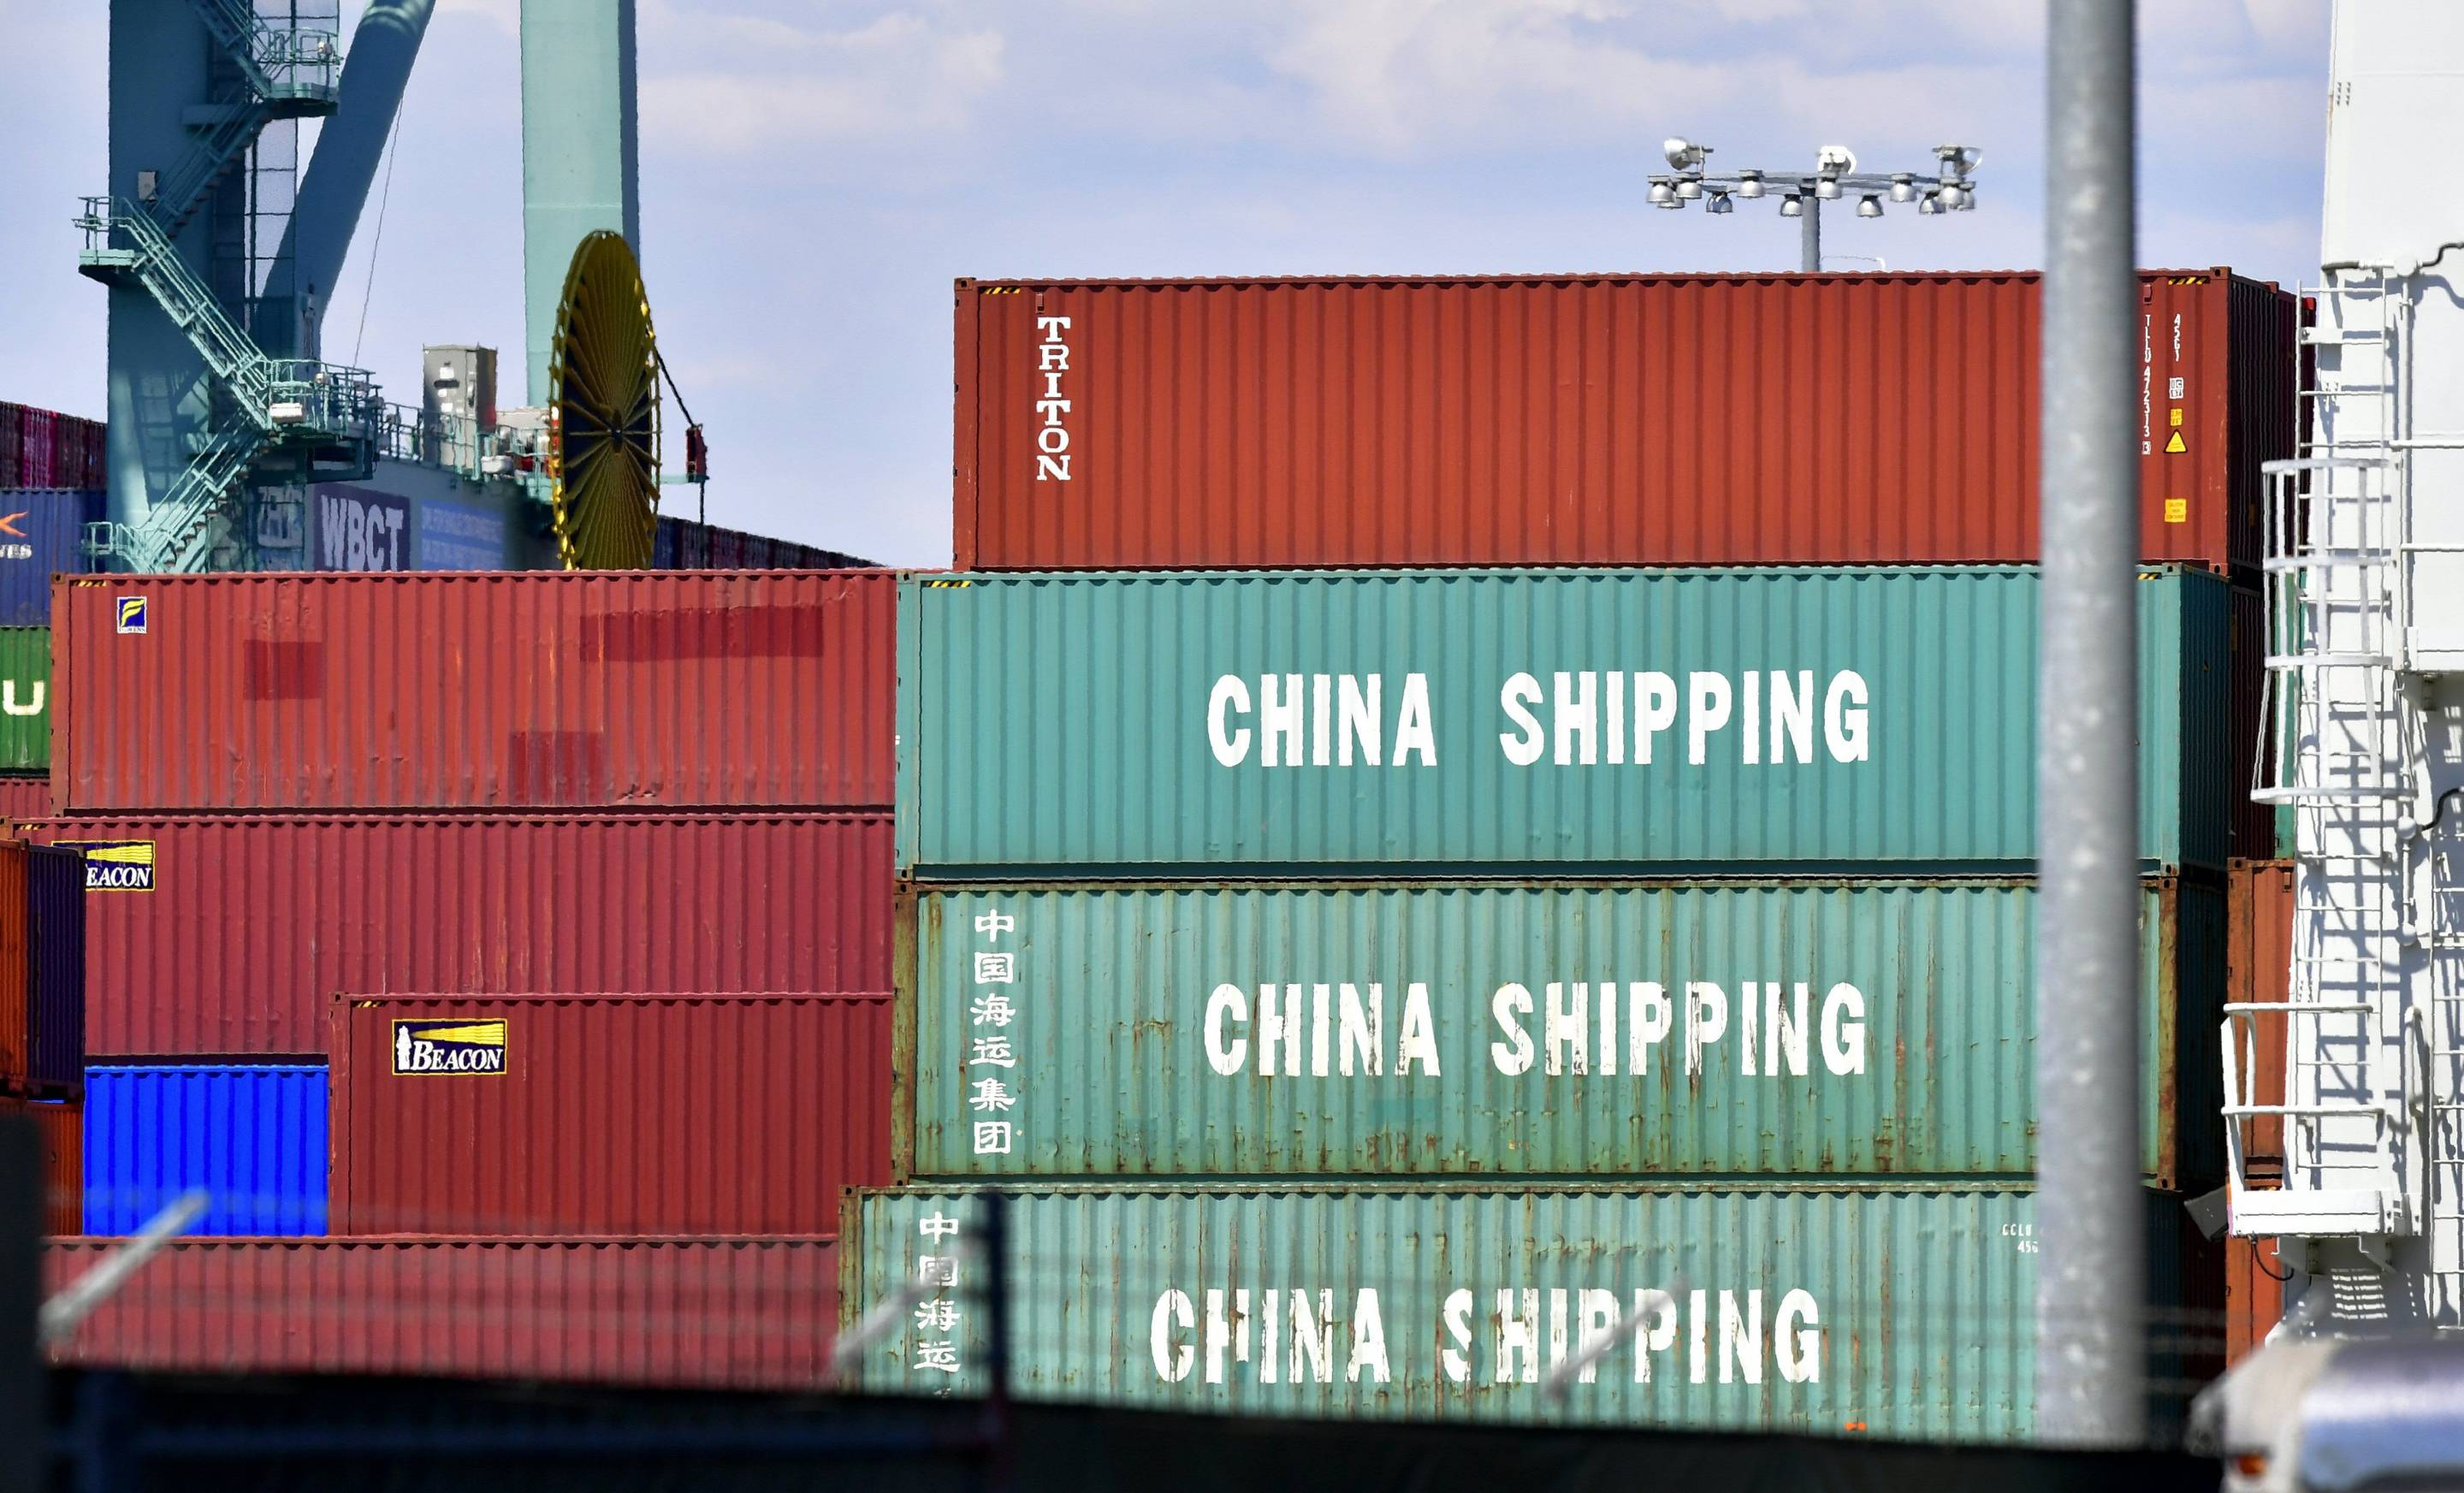 US Walks Back On Trade Talk Commitments. China Goes Forward With Response To Tariff Hike